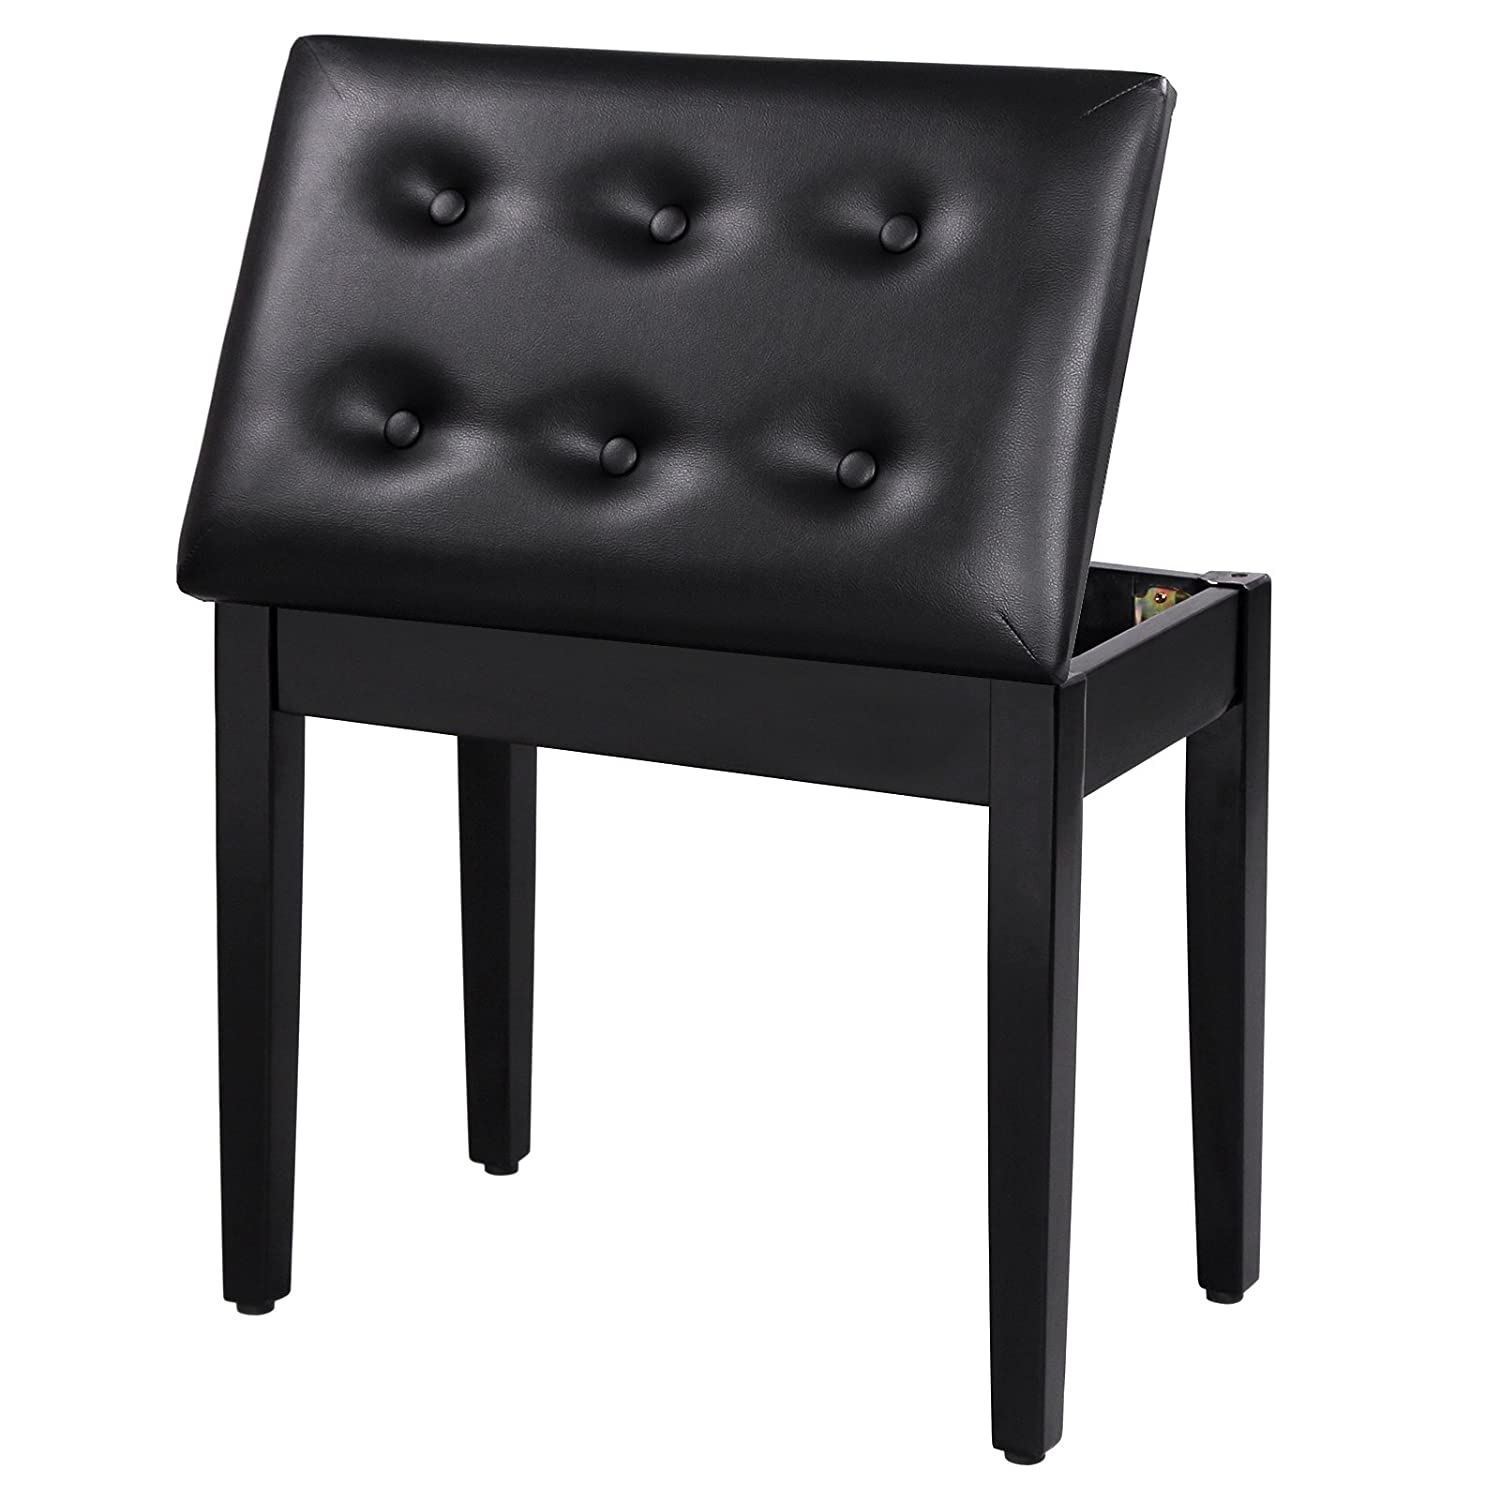 Adjustable piano chair - Amazon Com Songmics Padded Wooden Piano Bench Stool With Music Storage Black Ulpb55h Musical Instruments